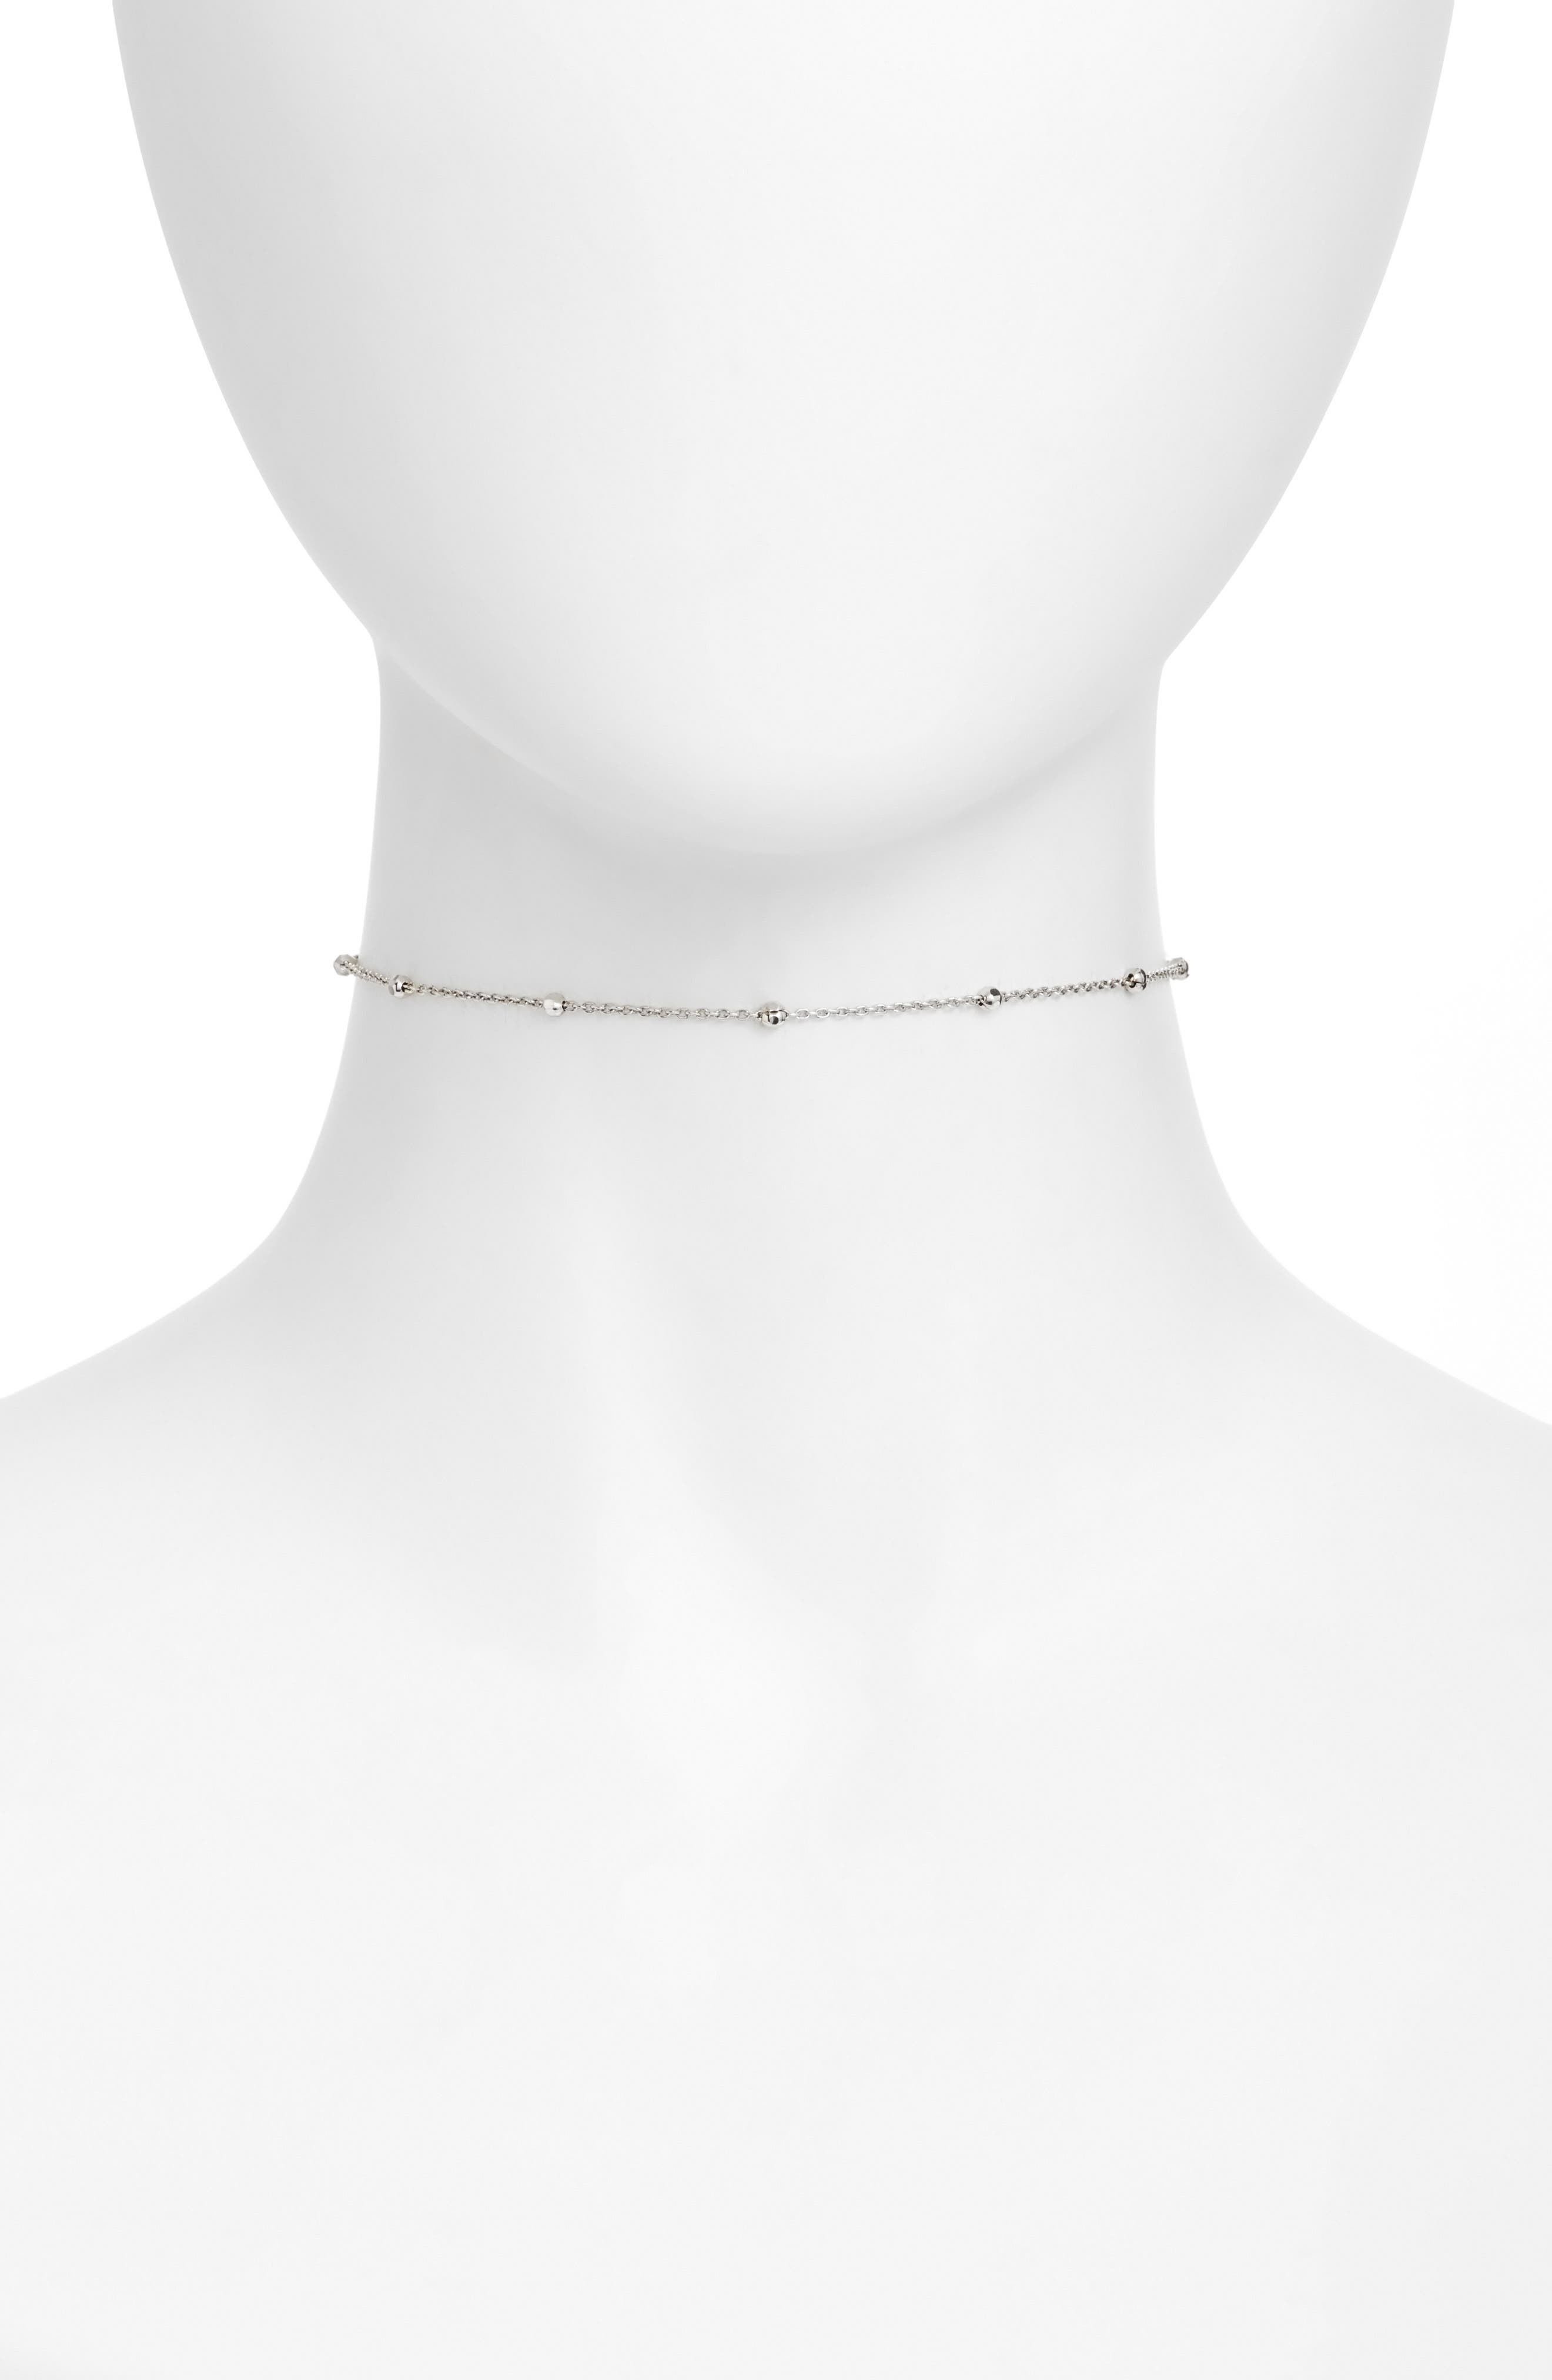 Choker Necklace,                             Main thumbnail 1, color,                             SILVER